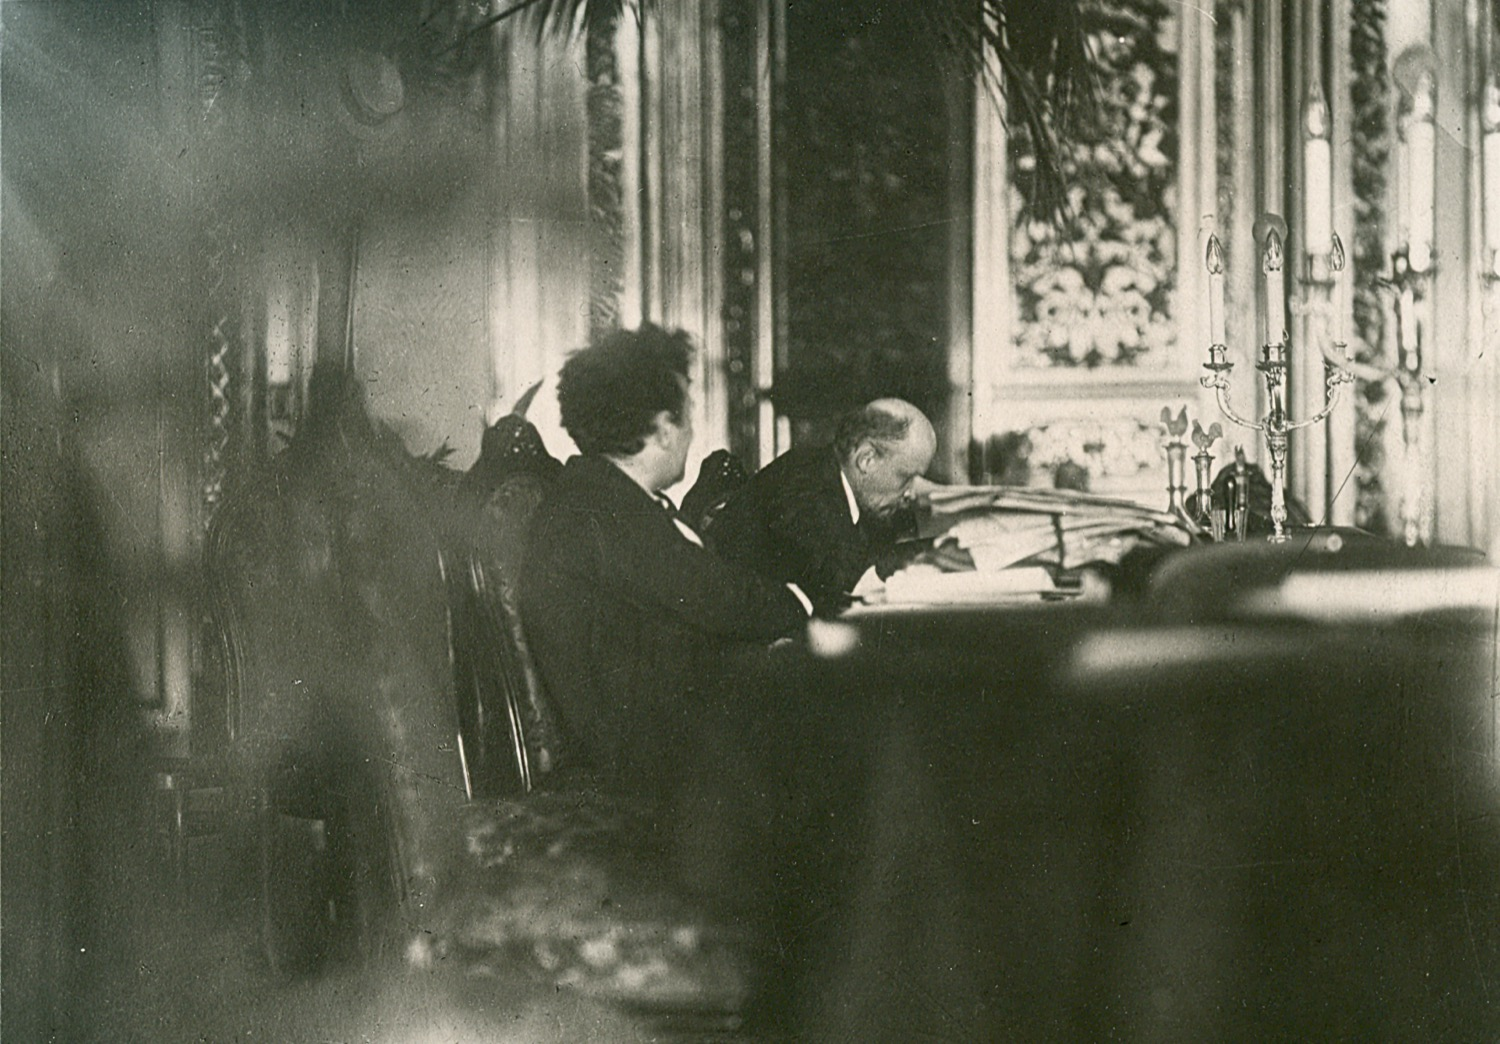 Photo. V. I. Lenin and G. E. Zinoviev in the Presidium of the Second Congress of Comintern in the St. Andrew's hall of the Kremlin. RSFSR, Moscow. July 23 – August 6, 1920. Photographer V. K. Bulla